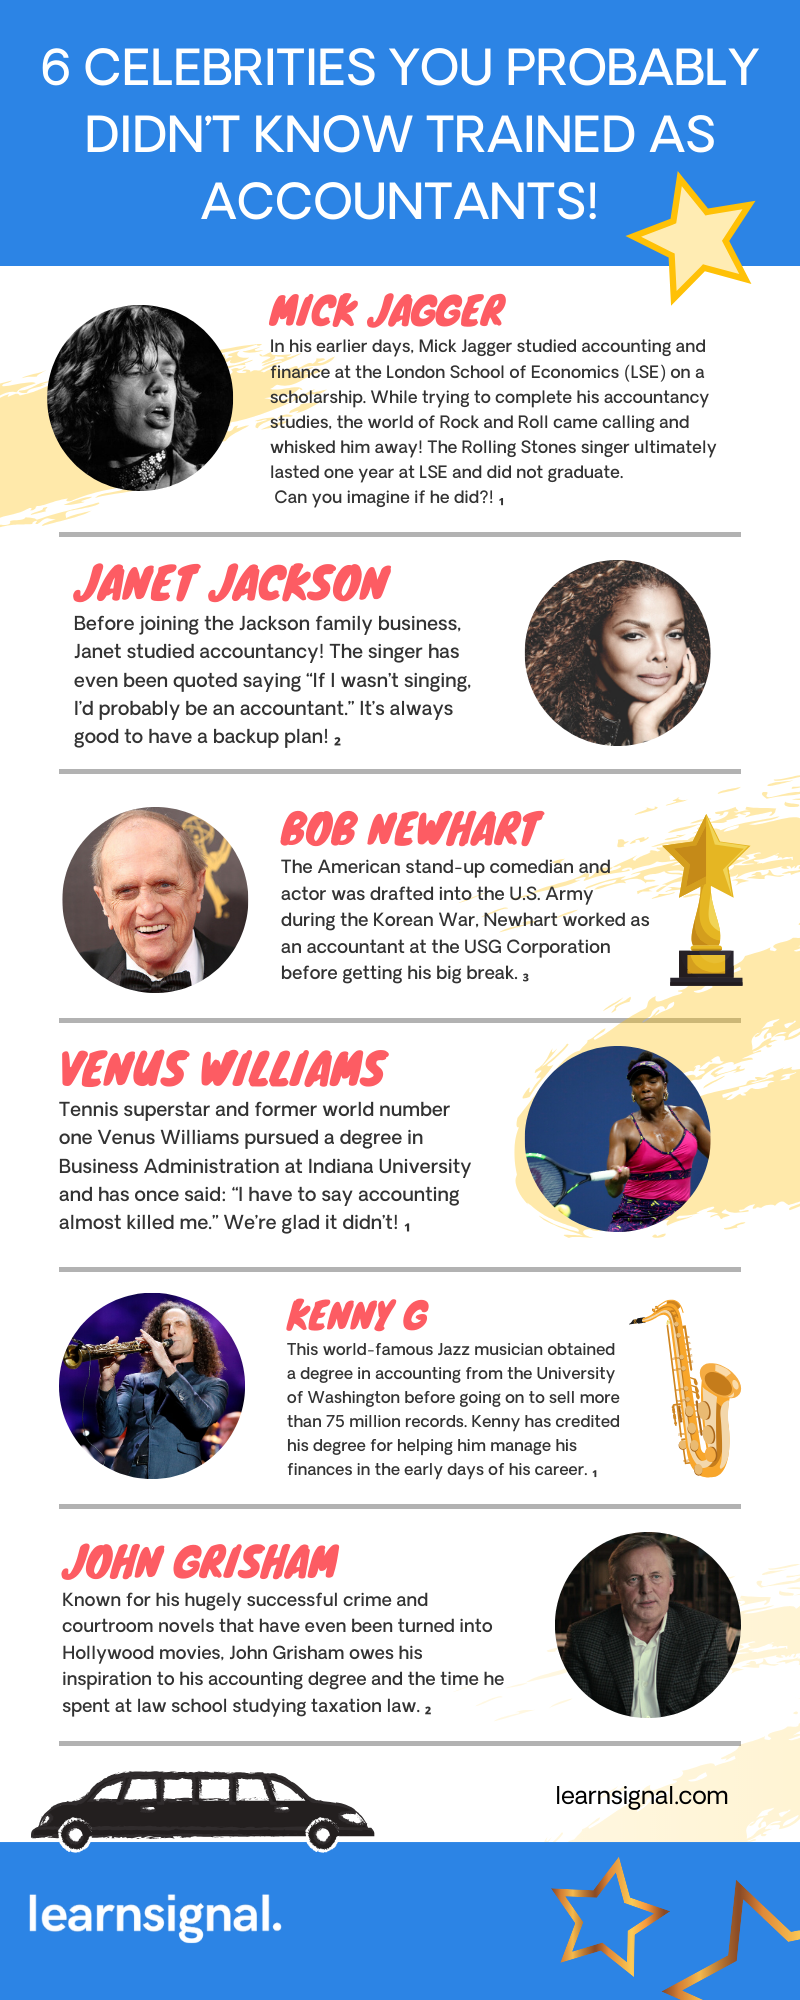 6 Celebrities You Probably Didn't Know Trained As Accountants Infographic